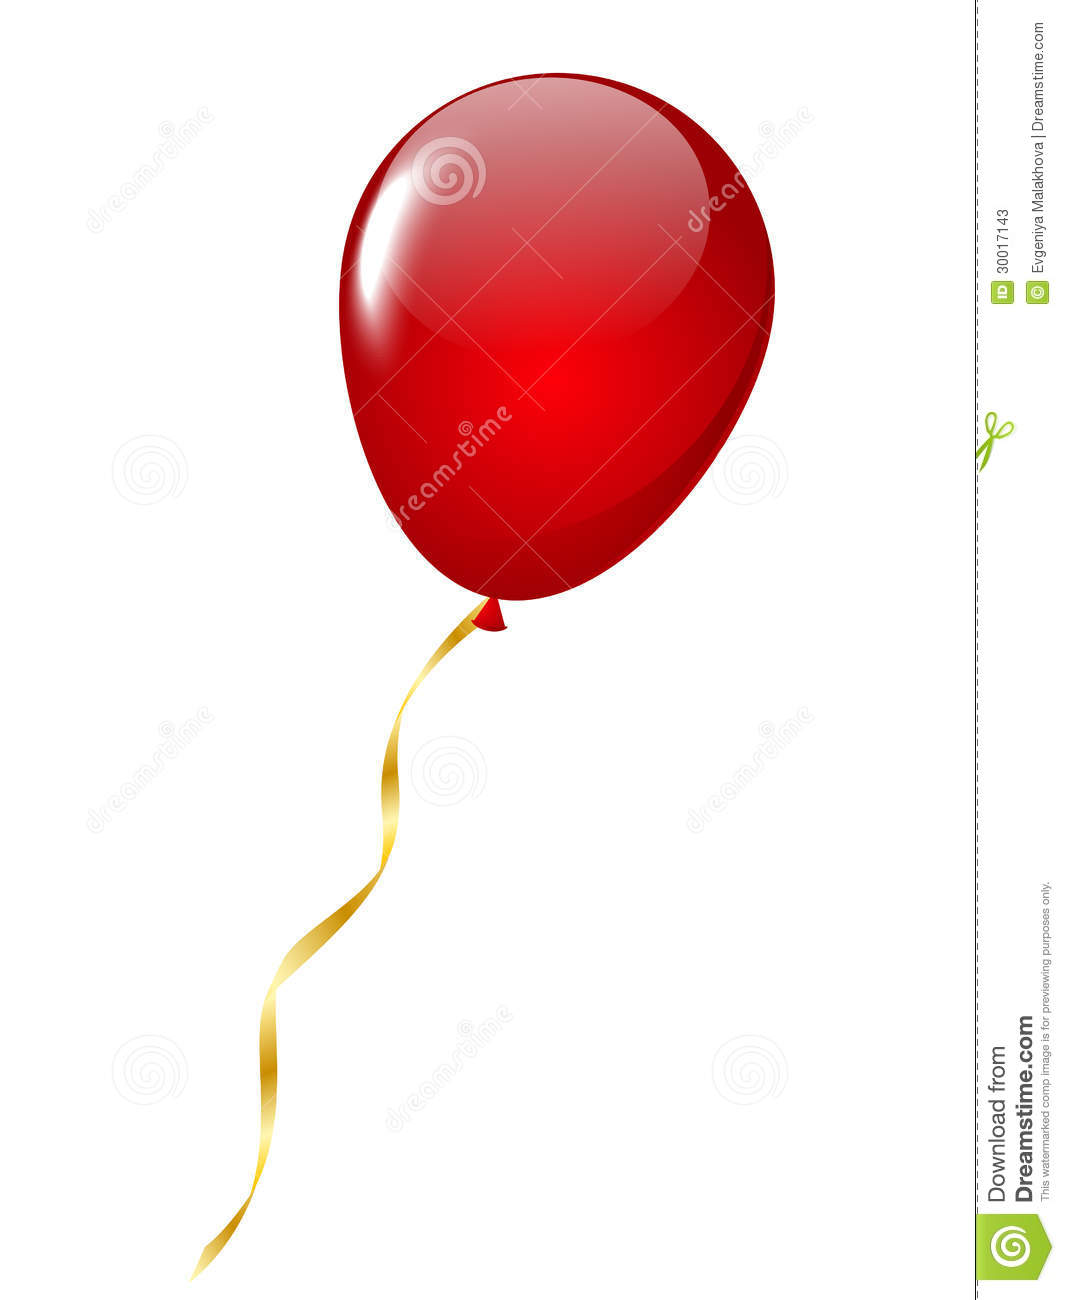 Red Balloon Stock Photos - Image: 30017143